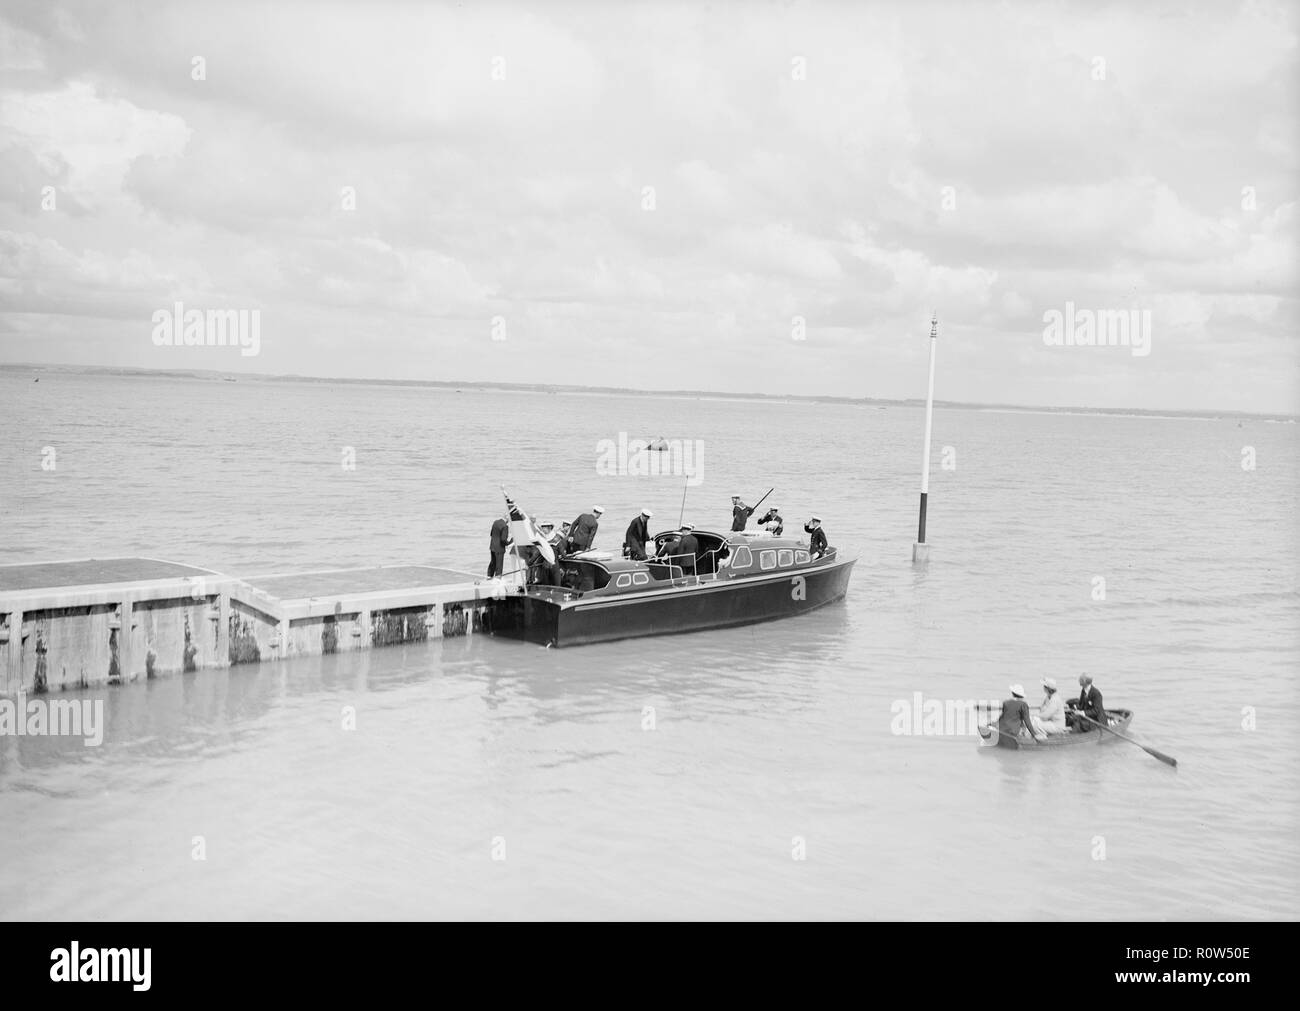 Royal Motor Barge, possibly Isle of Wight, c1939. - Stock Image